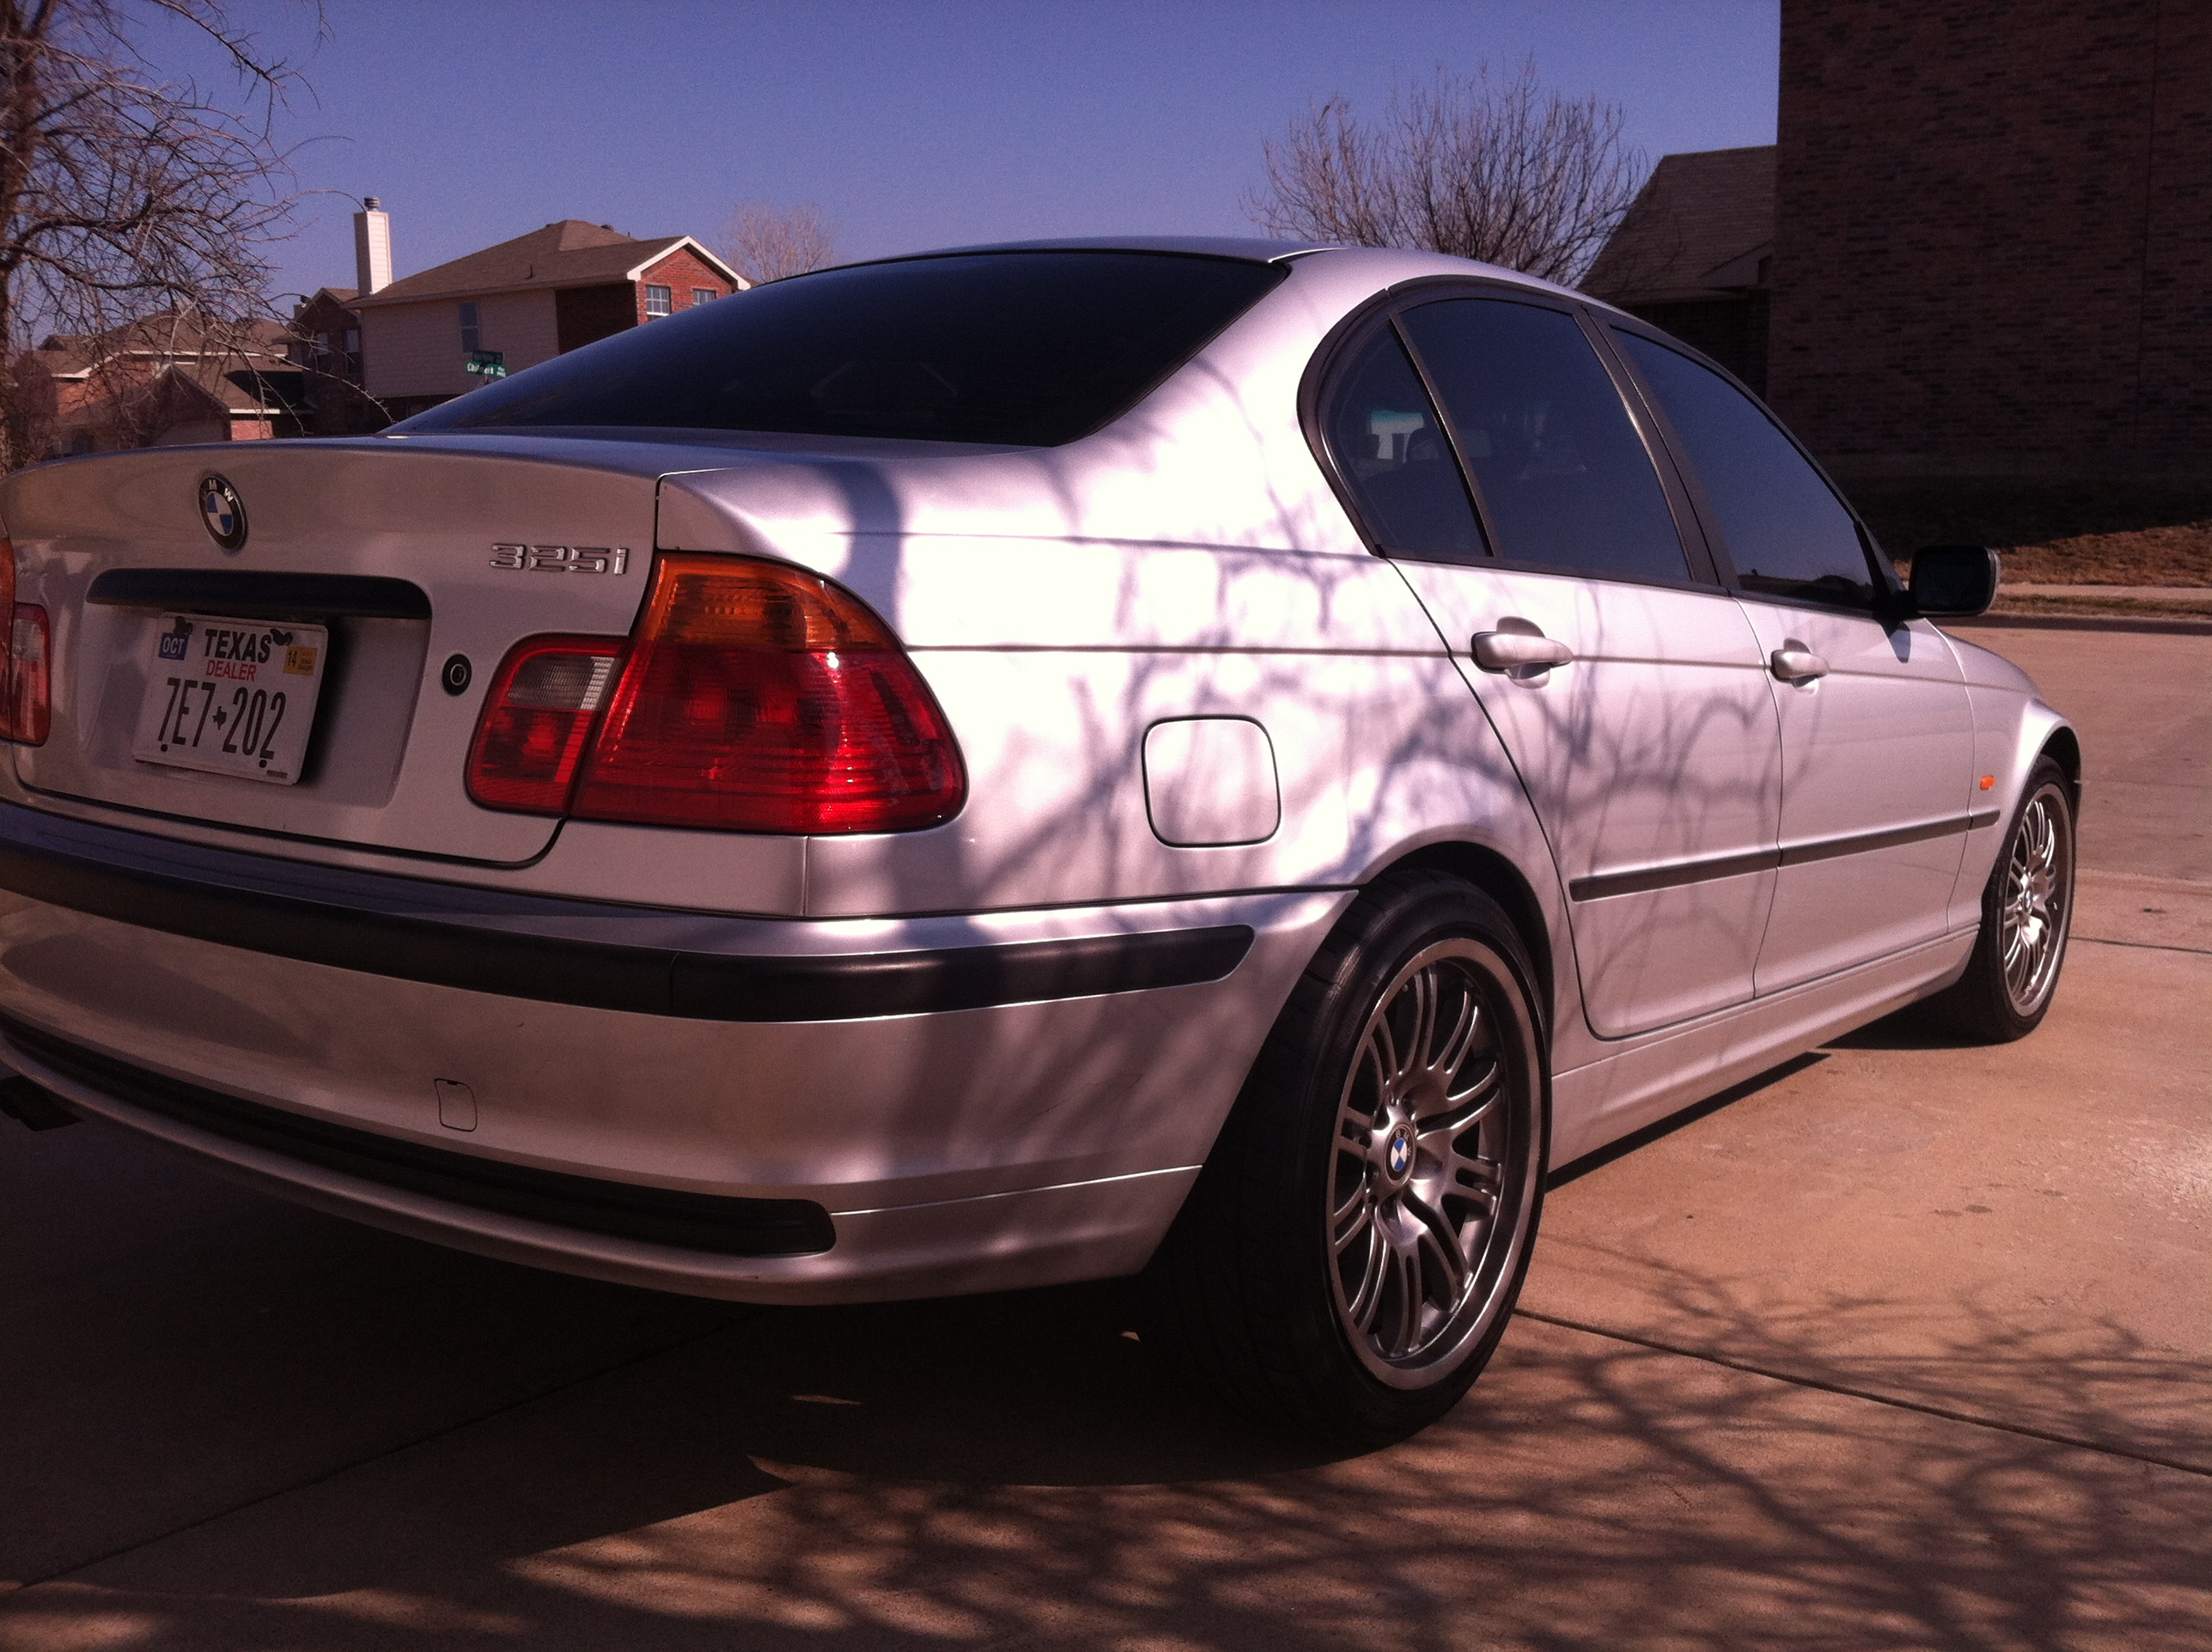 BMW I M Wheels Global Auto Sale LLC - Bmw 325i m3